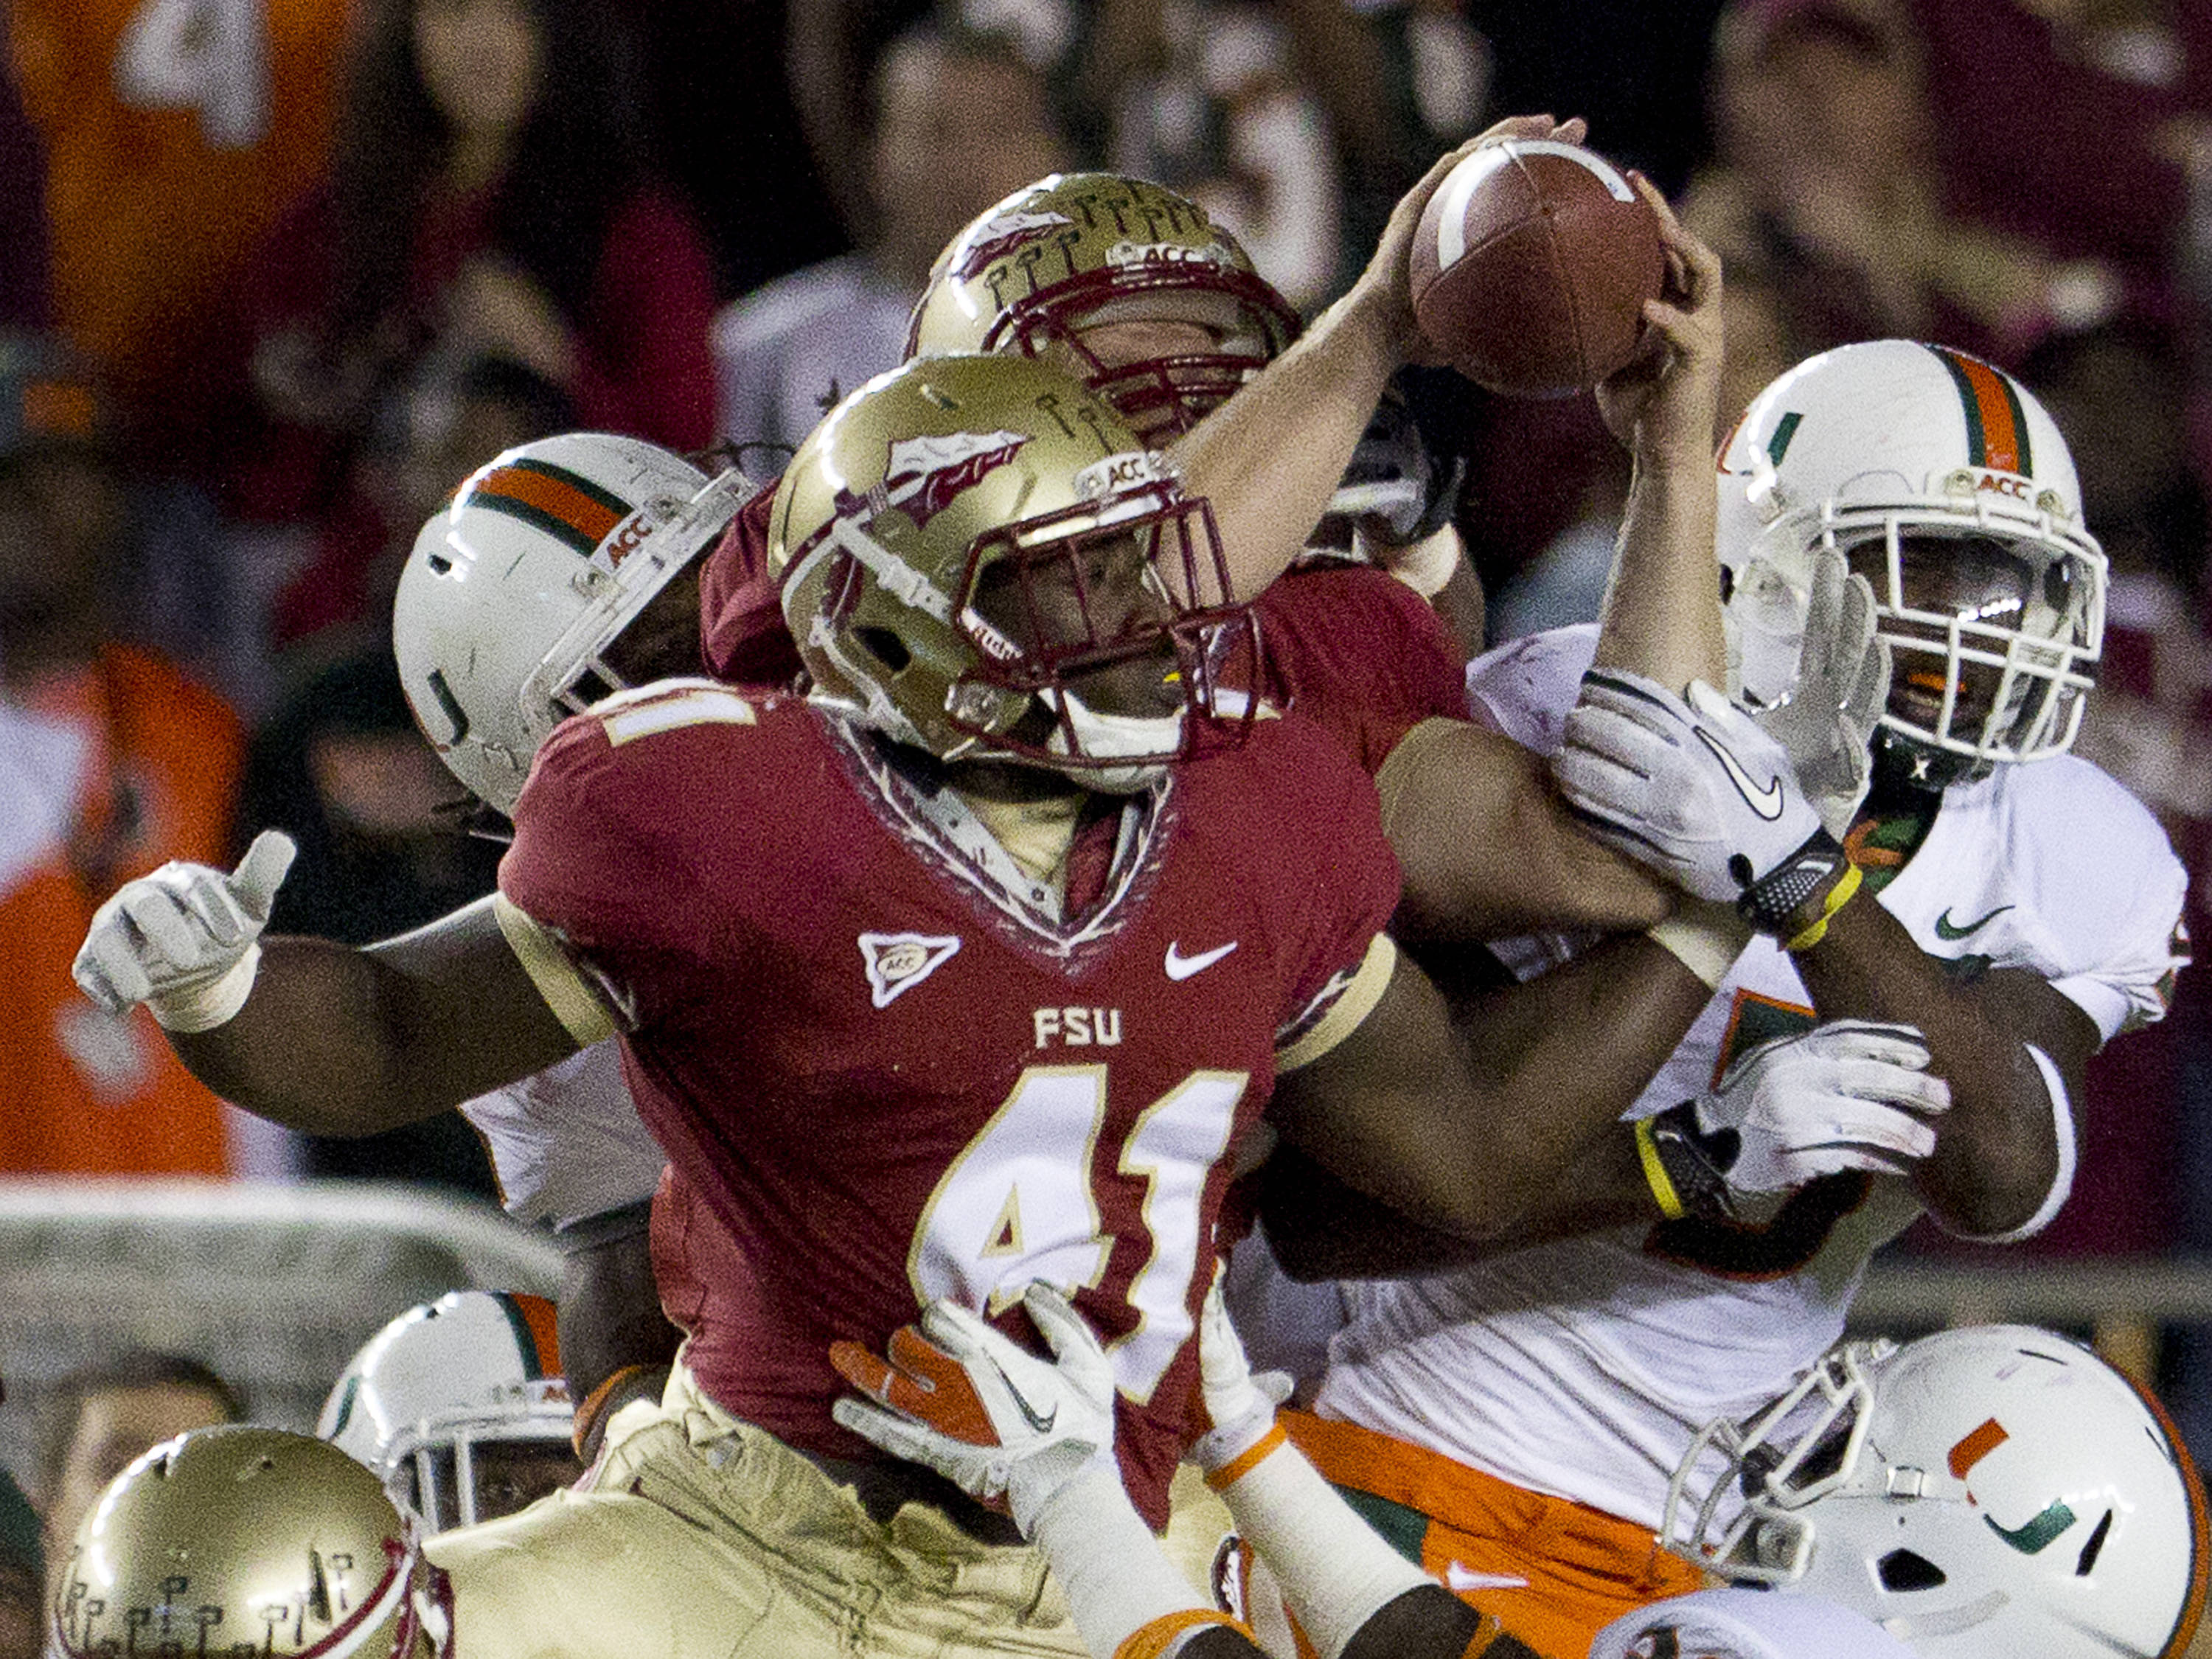 FSU takes possession of the ball after the on-side kick during the football game against Miami on November 12, 2011.